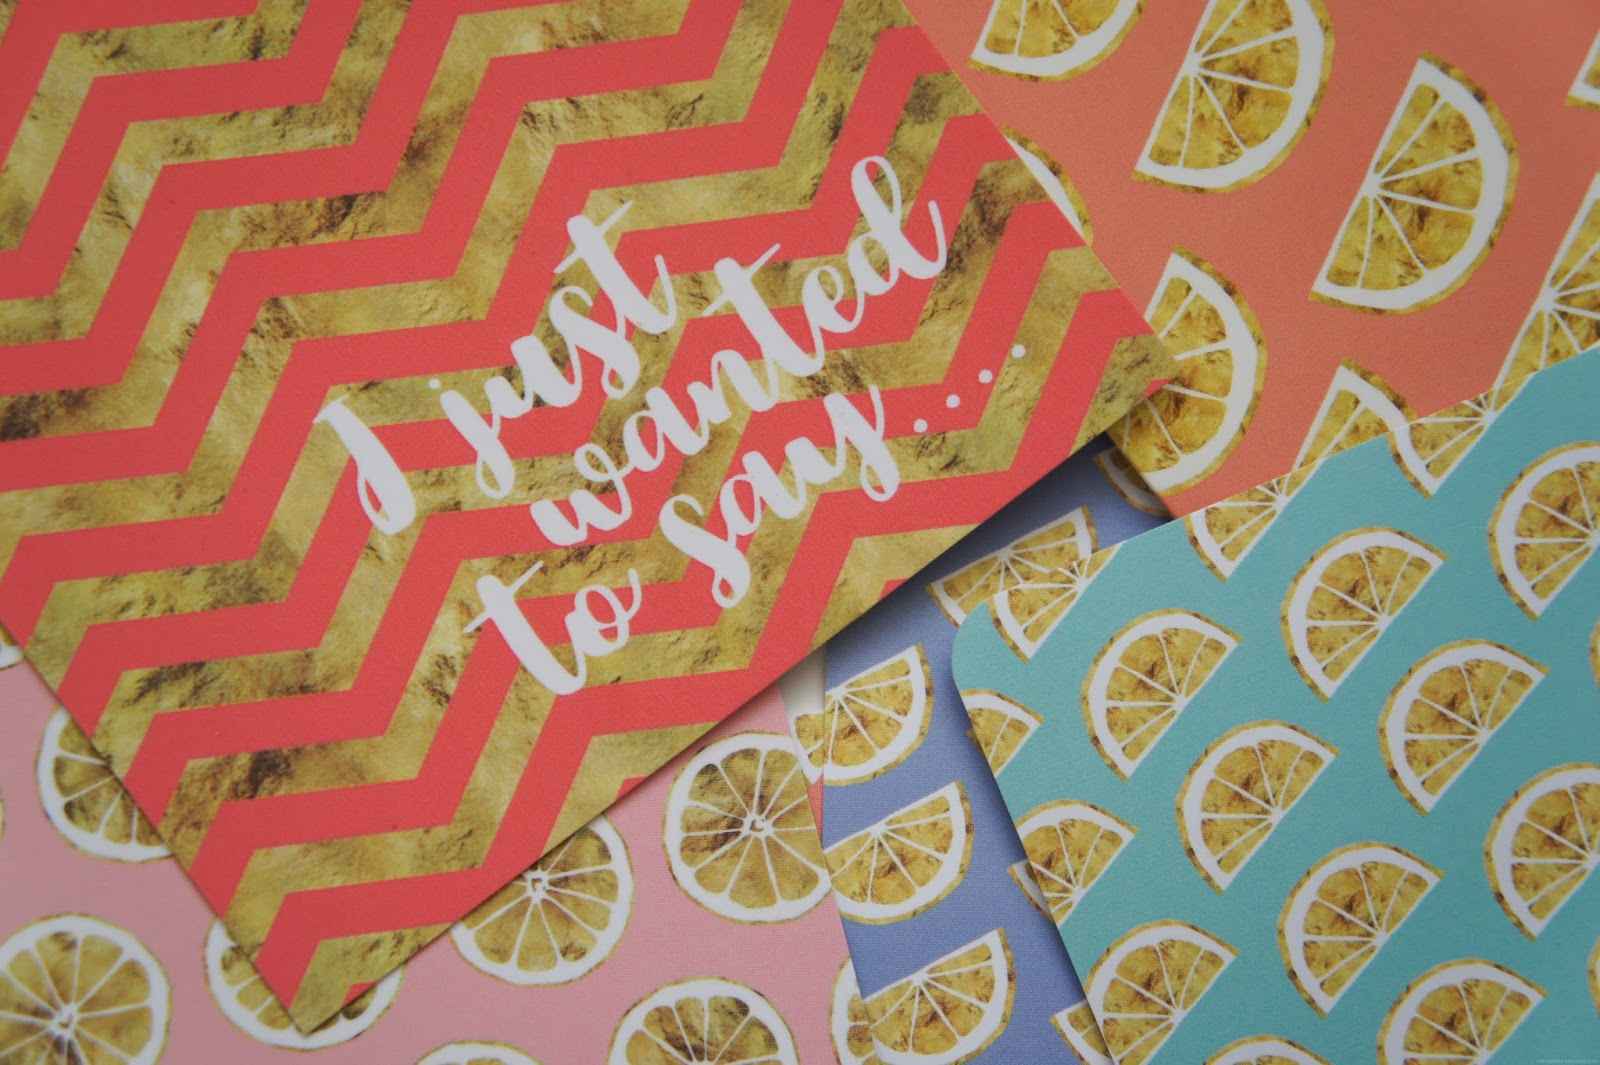 paperhaul april 2017 lemons stationery subscription box